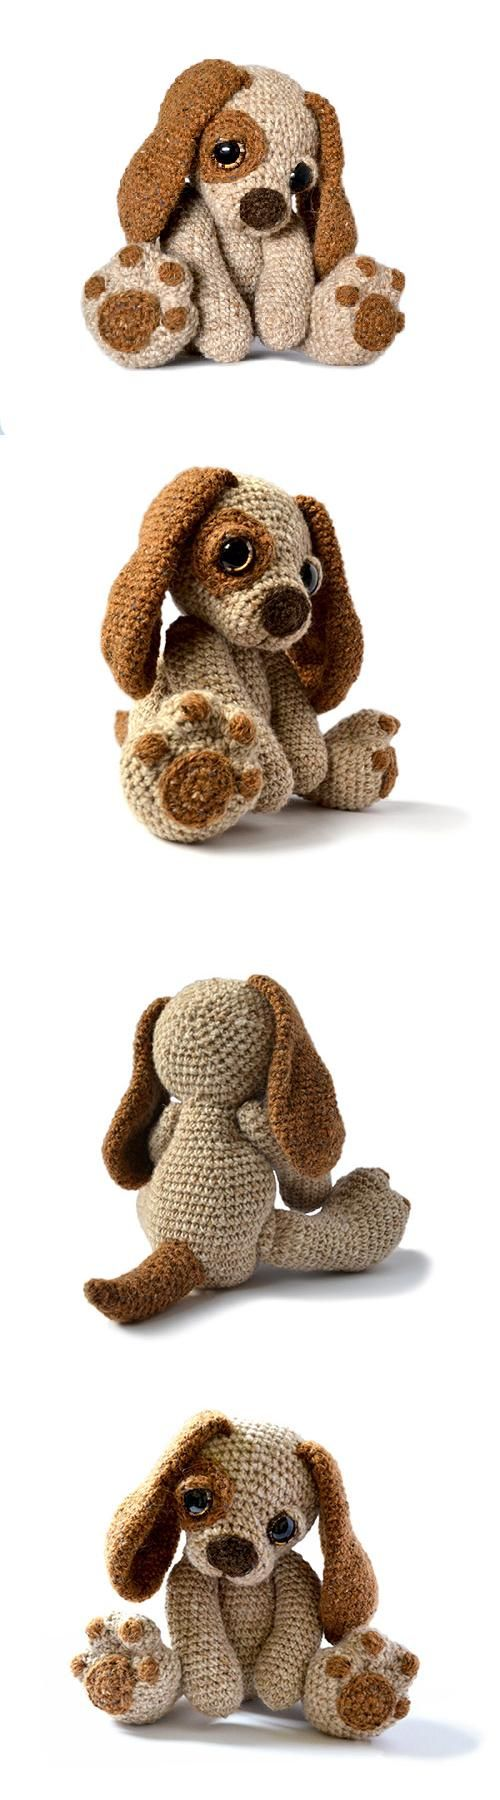 Moss the Puppy dog amigurumi pattern by Patchwork Moose (Kate E ...